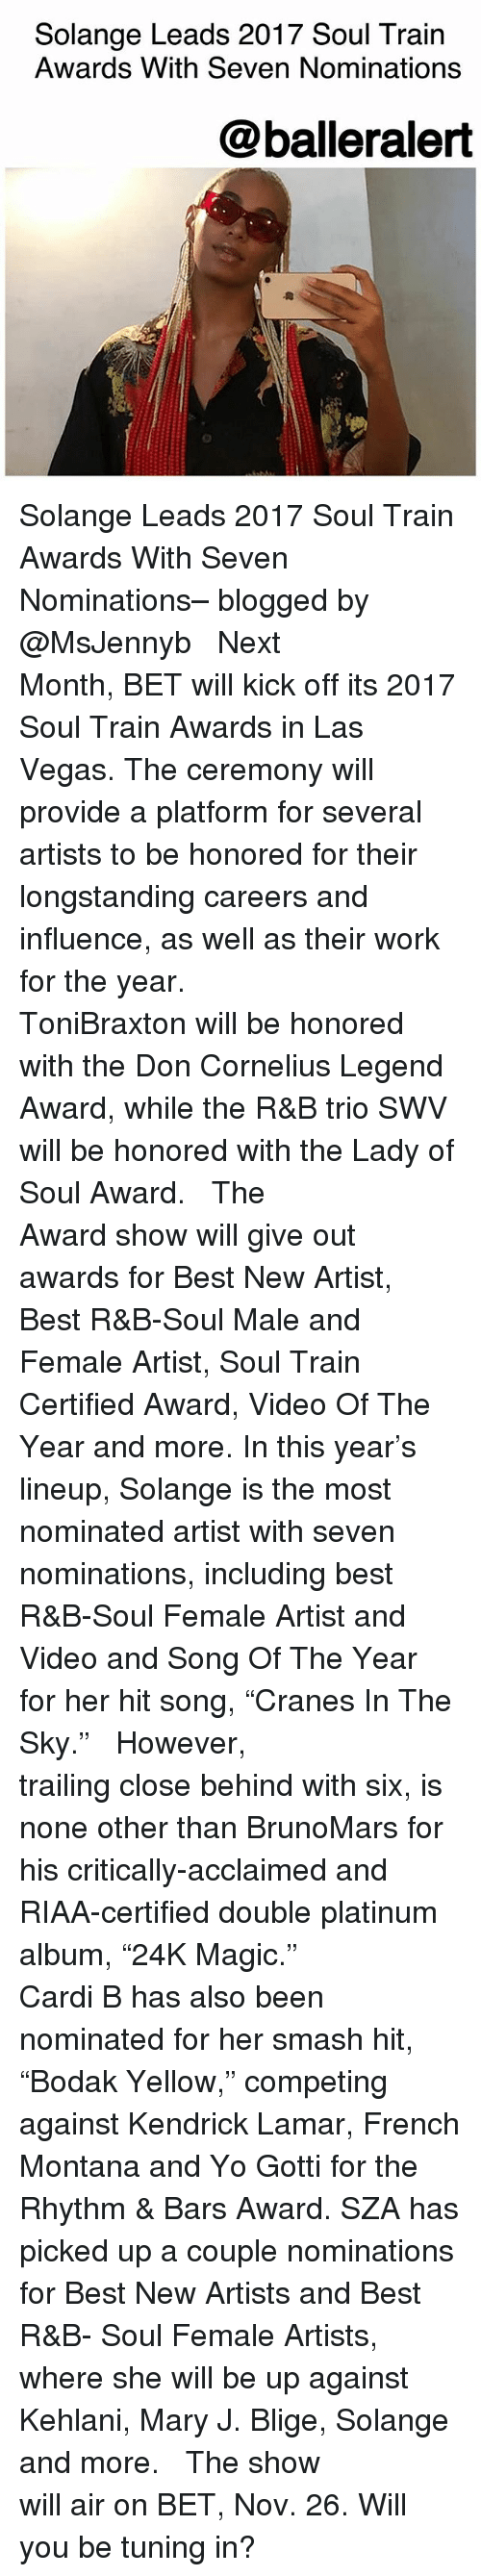 """Kendrick Lamar, Memes, and Smashing: Solange Leads 2017 Soul Train  Awards With Seven Nominations  @balleralert Solange Leads 2017 Soul Train Awards With Seven Nominations– blogged by @MsJennyb ⠀⠀⠀⠀⠀⠀⠀ ⠀⠀⠀⠀⠀⠀⠀ Next Month, BET will kick off its 2017 Soul Train Awards in Las Vegas. The ceremony will provide a platform for several artists to be honored for their longstanding careers and influence, as well as their work for the year. ⠀⠀⠀⠀⠀⠀⠀ ⠀⠀⠀⠀⠀⠀⠀ ToniBraxton will be honored with the Don Cornelius Legend Award, while the R&B trio SWV will be honored with the Lady of Soul Award. ⠀⠀⠀⠀⠀⠀⠀ ⠀⠀⠀⠀⠀⠀⠀ The Award show will give out awards for Best New Artist, Best R&B-Soul Male and Female Artist, Soul Train Certified Award, Video Of The Year and more. In this year's lineup, Solange is the most nominated artist with seven nominations, including best R&B-Soul Female Artist and Video and Song Of The Year for her hit song, """"Cranes In The Sky."""" ⠀⠀⠀⠀⠀⠀⠀ ⠀⠀⠀⠀⠀⠀⠀ However, trailing close behind with six, is none other than BrunoMars for his critically-acclaimed and RIAA-certified double platinum album, """"24K Magic."""" ⠀⠀⠀⠀⠀⠀⠀ ⠀⠀⠀⠀⠀⠀⠀ Cardi B has also been nominated for her smash hit, """"Bodak Yellow,"""" competing against Kendrick Lamar, French Montana and Yo Gotti for the Rhythm & Bars Award. SZA has picked up a couple nominations for Best New Artists and Best R&B- Soul Female Artists, where she will be up against Kehlani, Mary J. Blige, Solange and more. ⠀⠀⠀⠀⠀⠀⠀ ⠀⠀⠀⠀⠀⠀⠀ The show will air on BET, Nov. 26. Will you be tuning in?"""